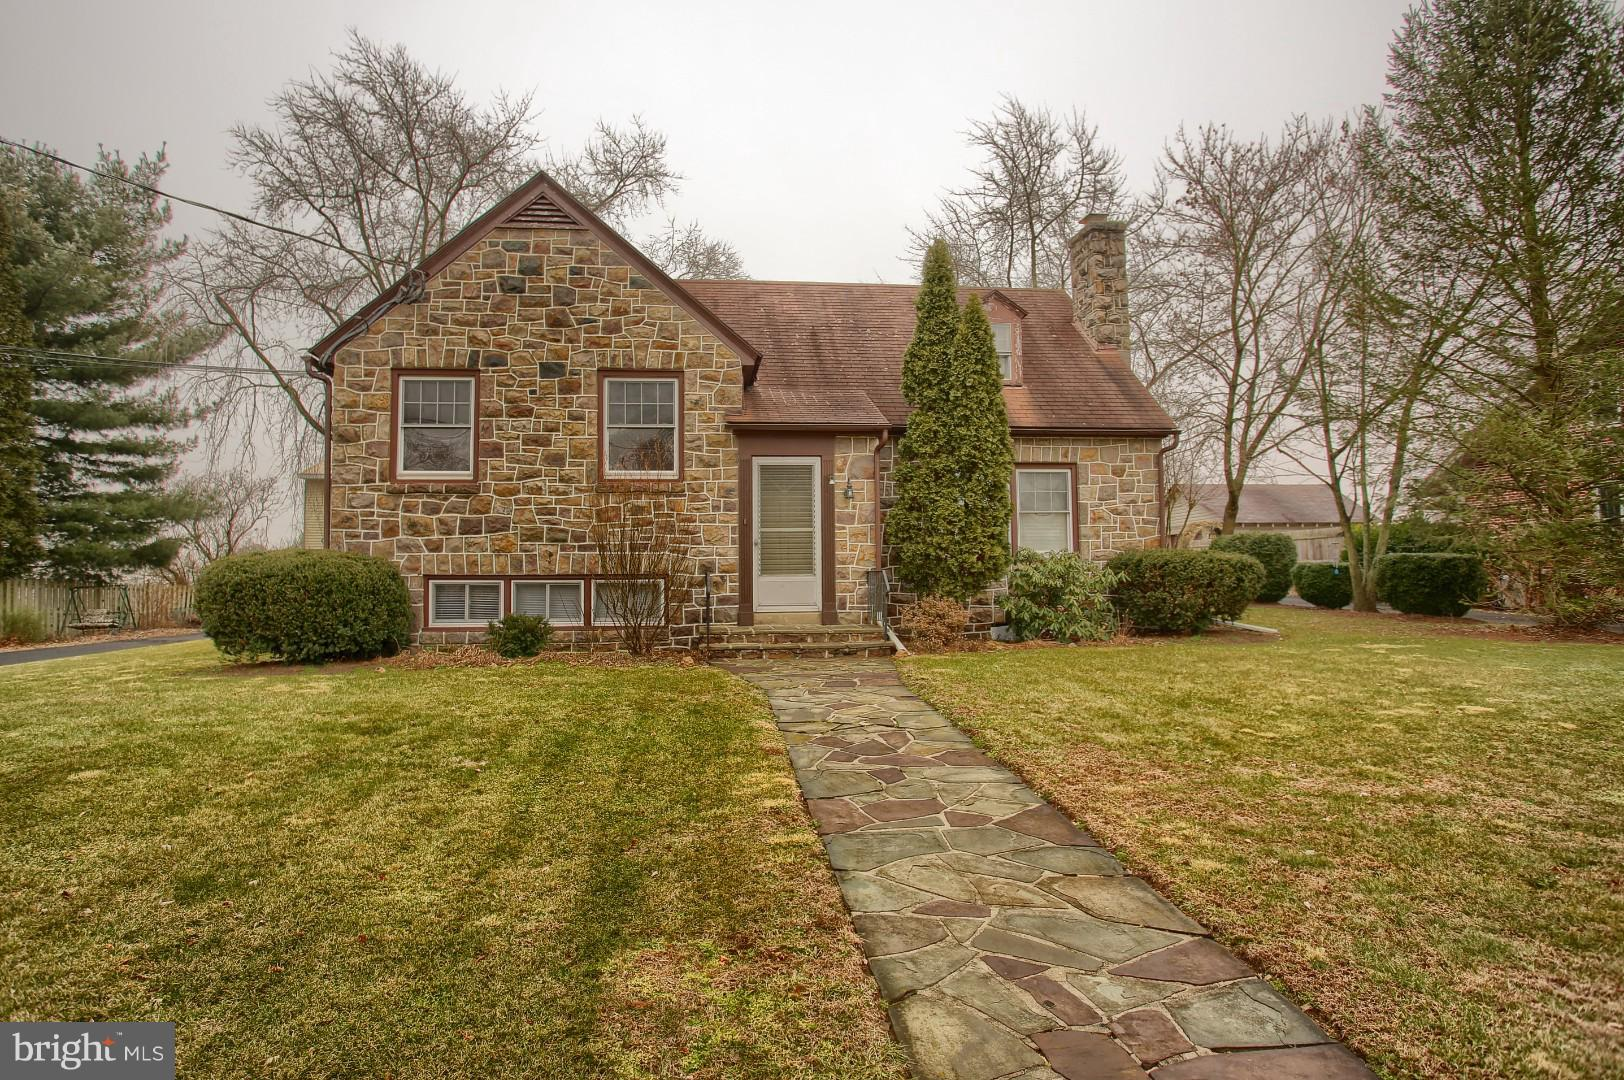 19 WATER STREET, OLEY, PA 19547